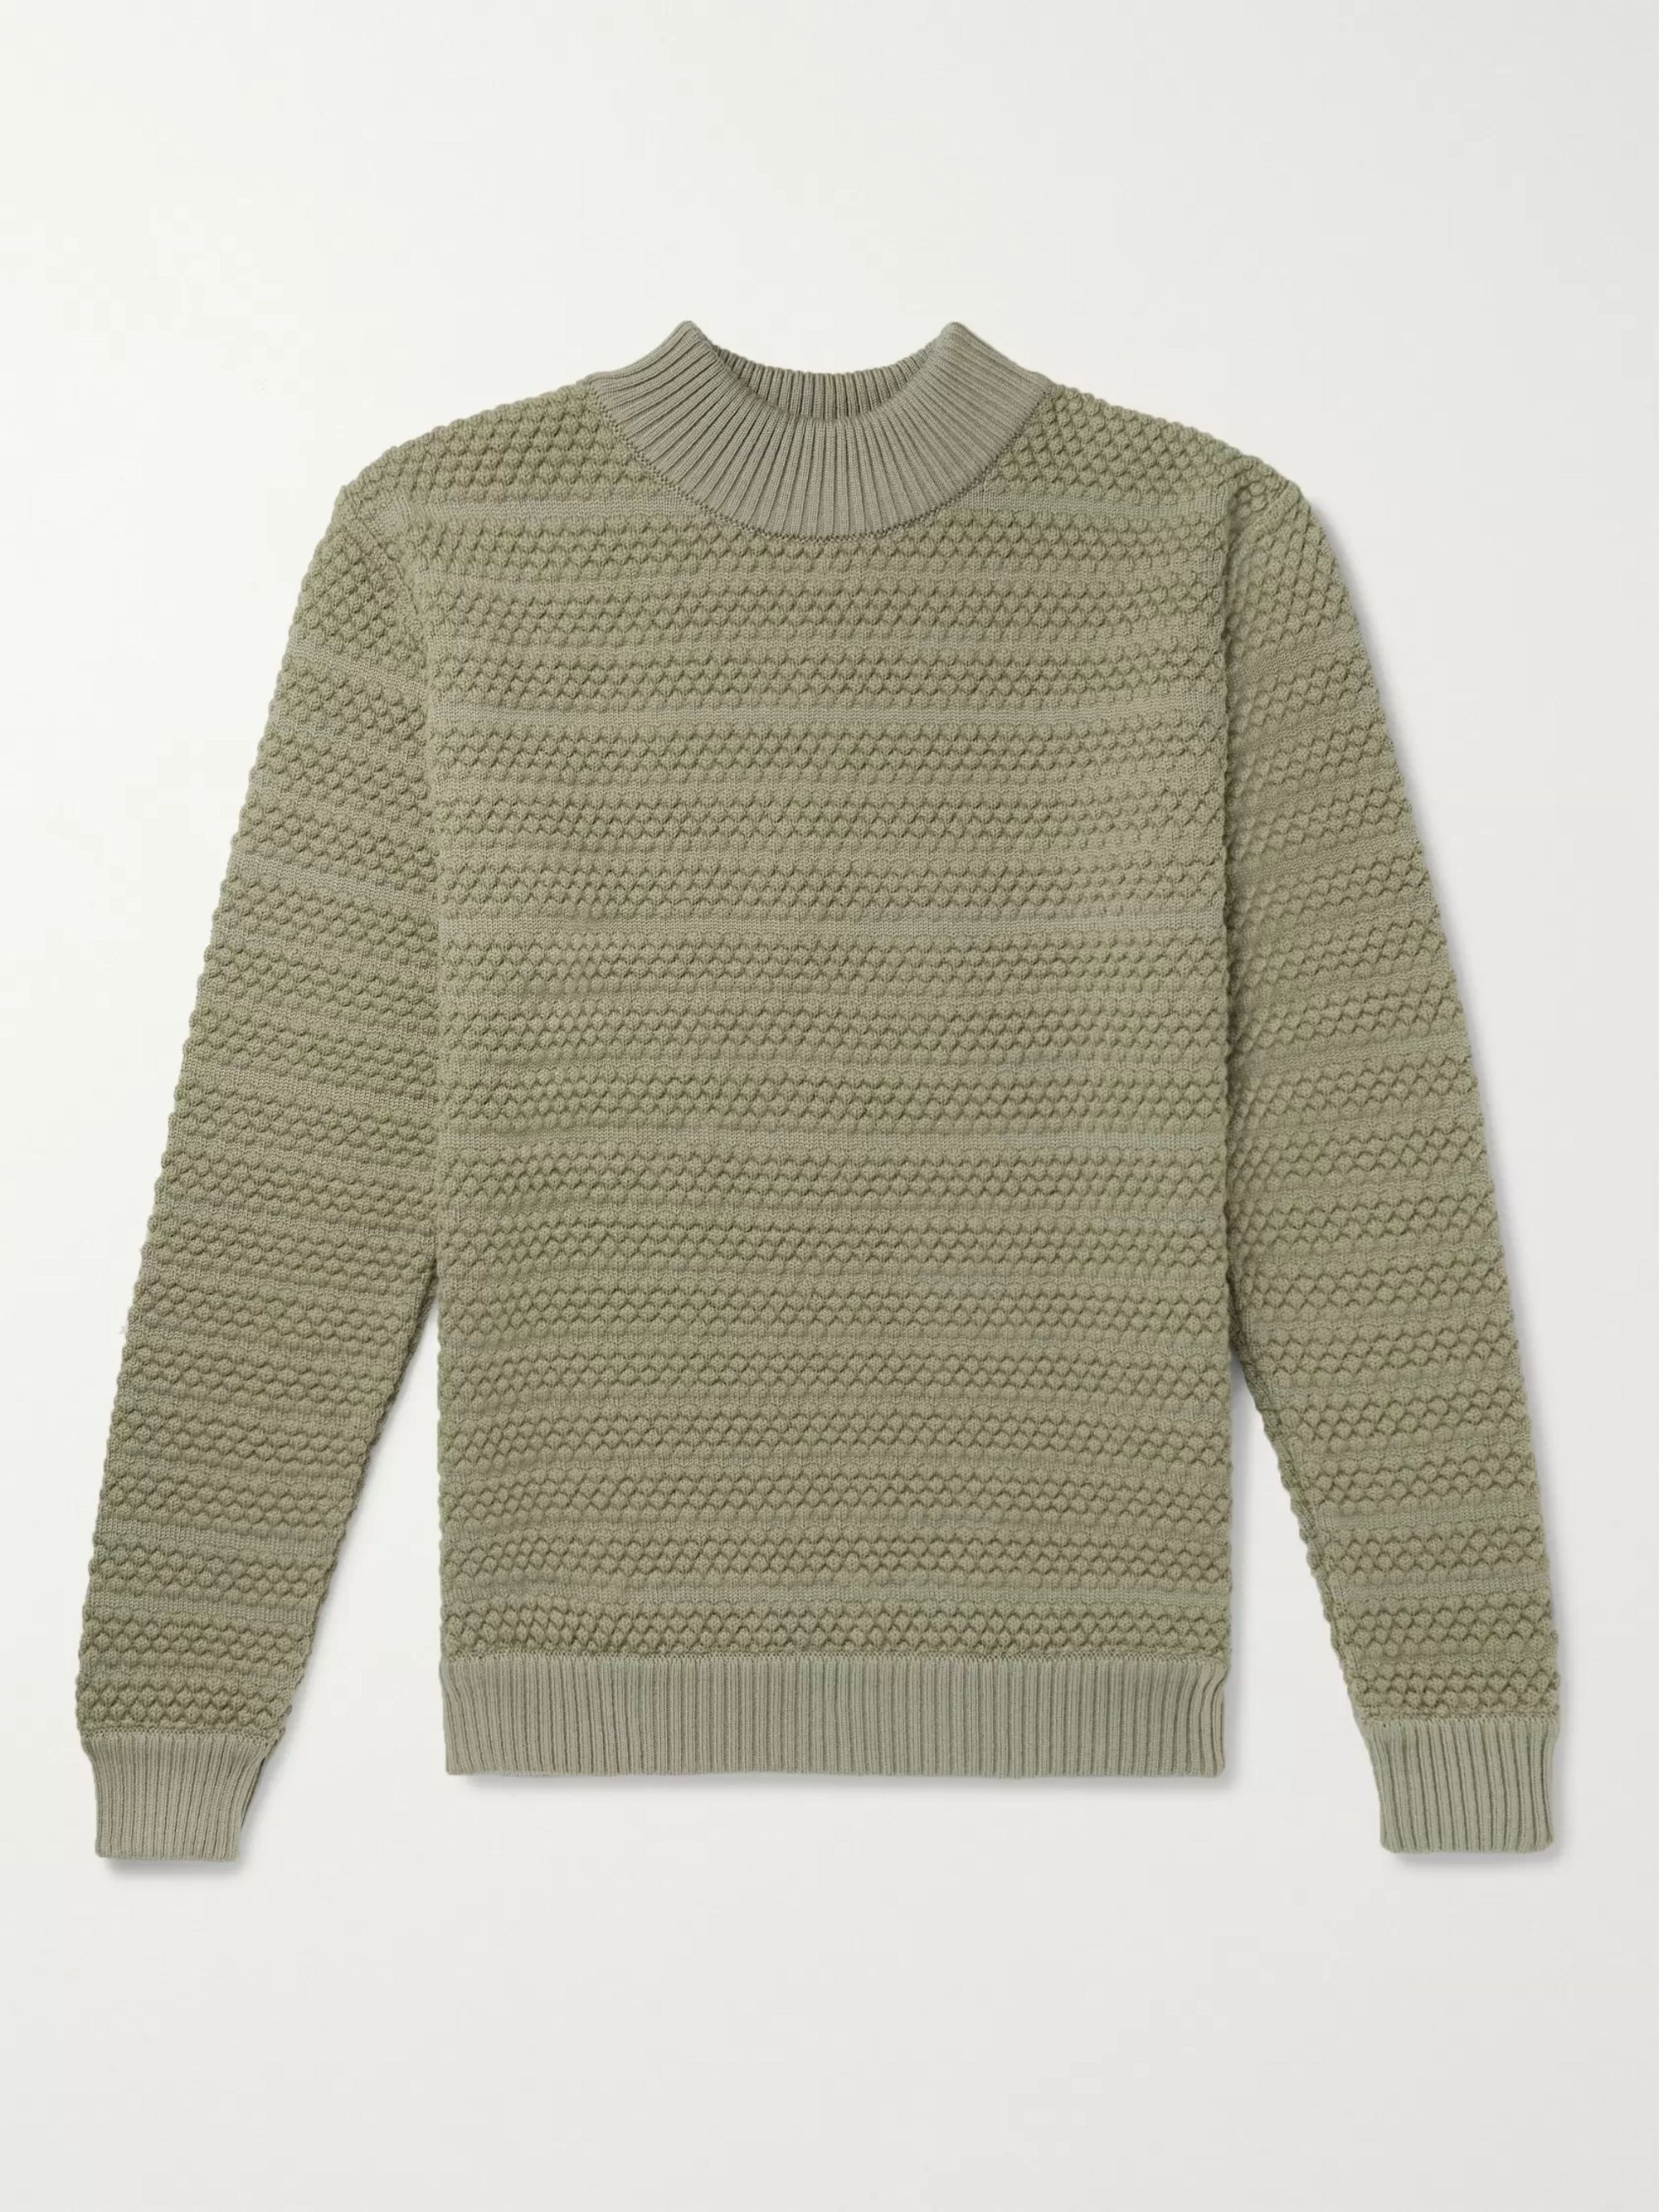 S.N.S. Herning Wool Mock-Neck Sweater